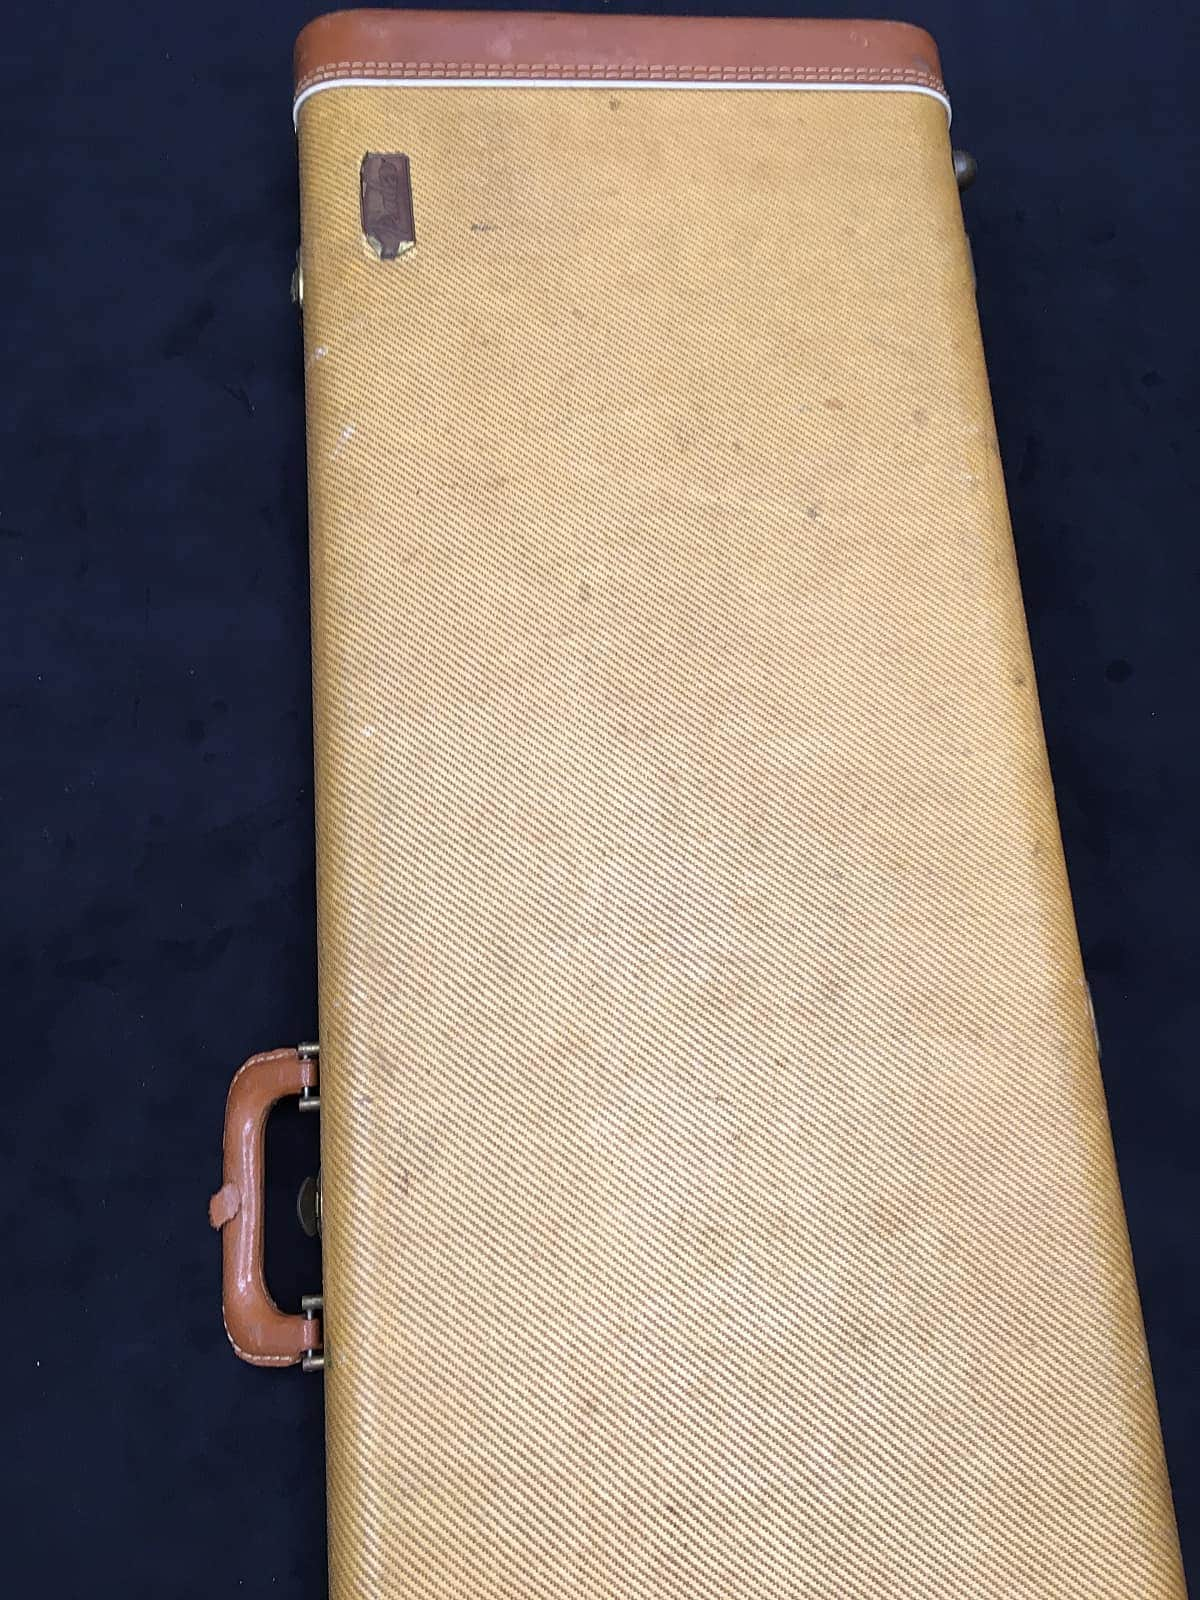 1957-stratocaster-tweed-case